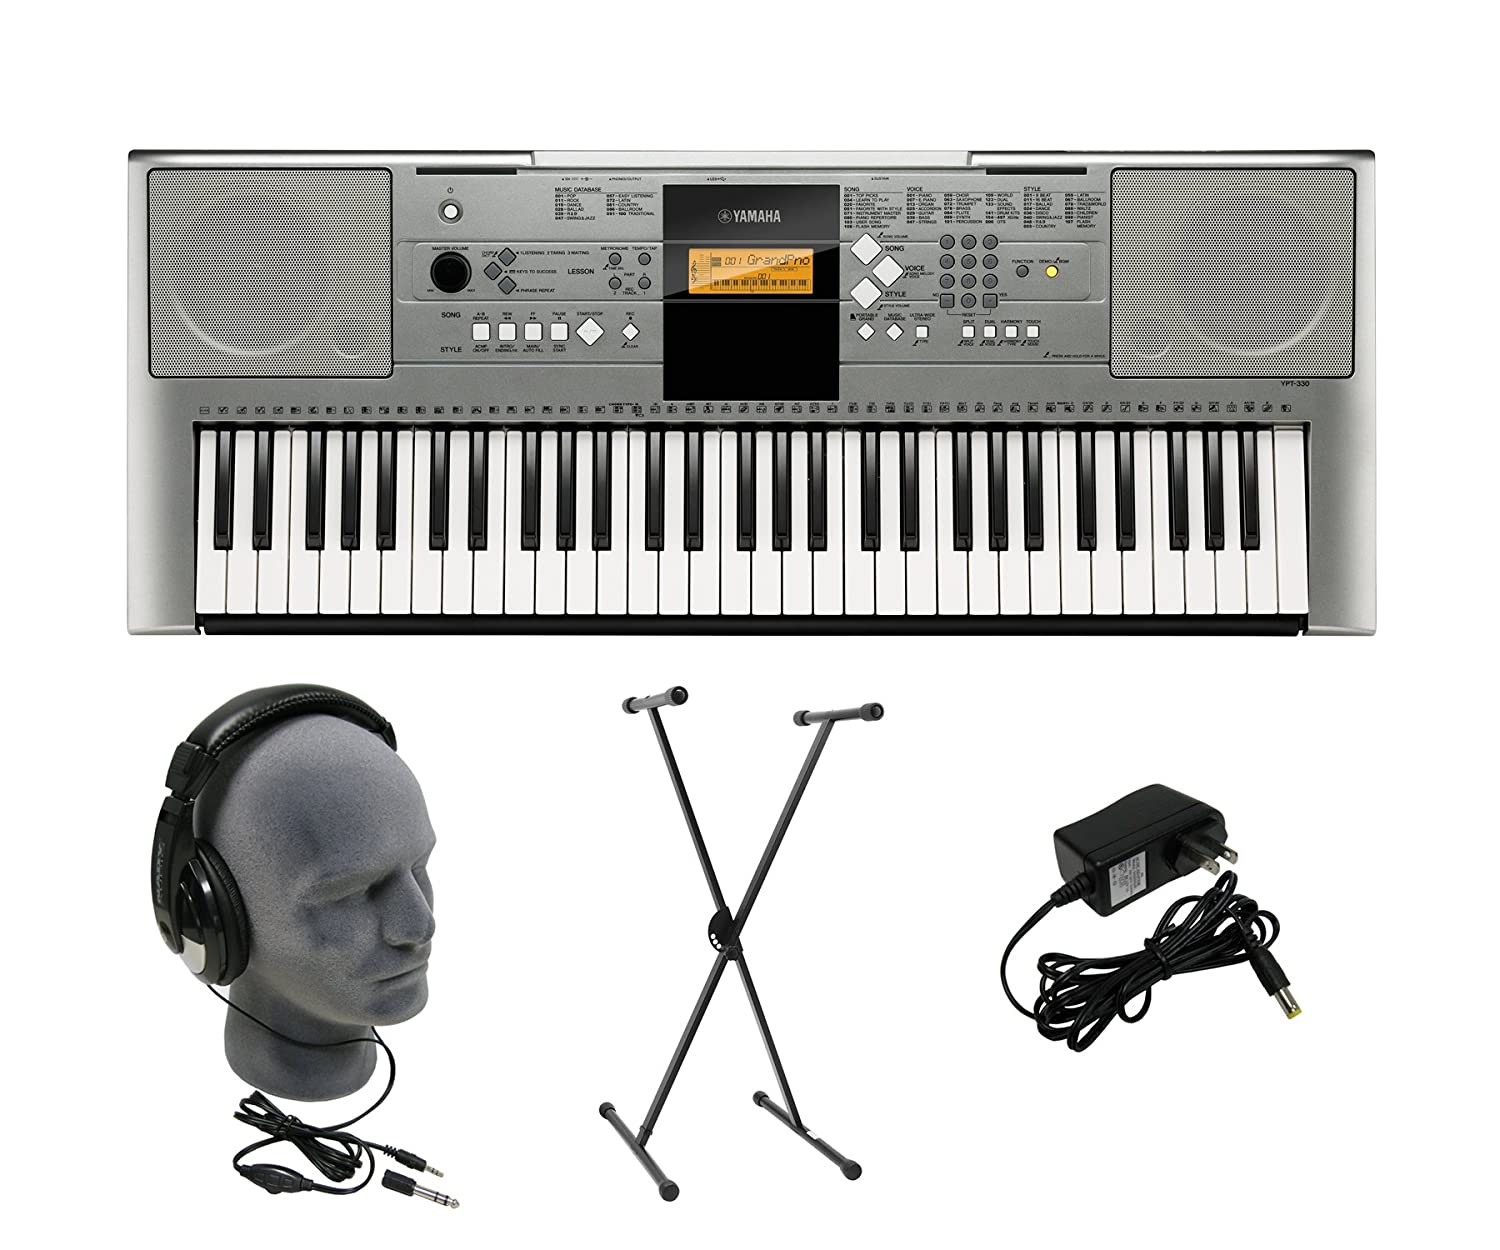 Amazon.com: Yamaha YPT-330 Premium Keyboard Pack with Headphones, Power Supply, and Stand: Musical Instruments